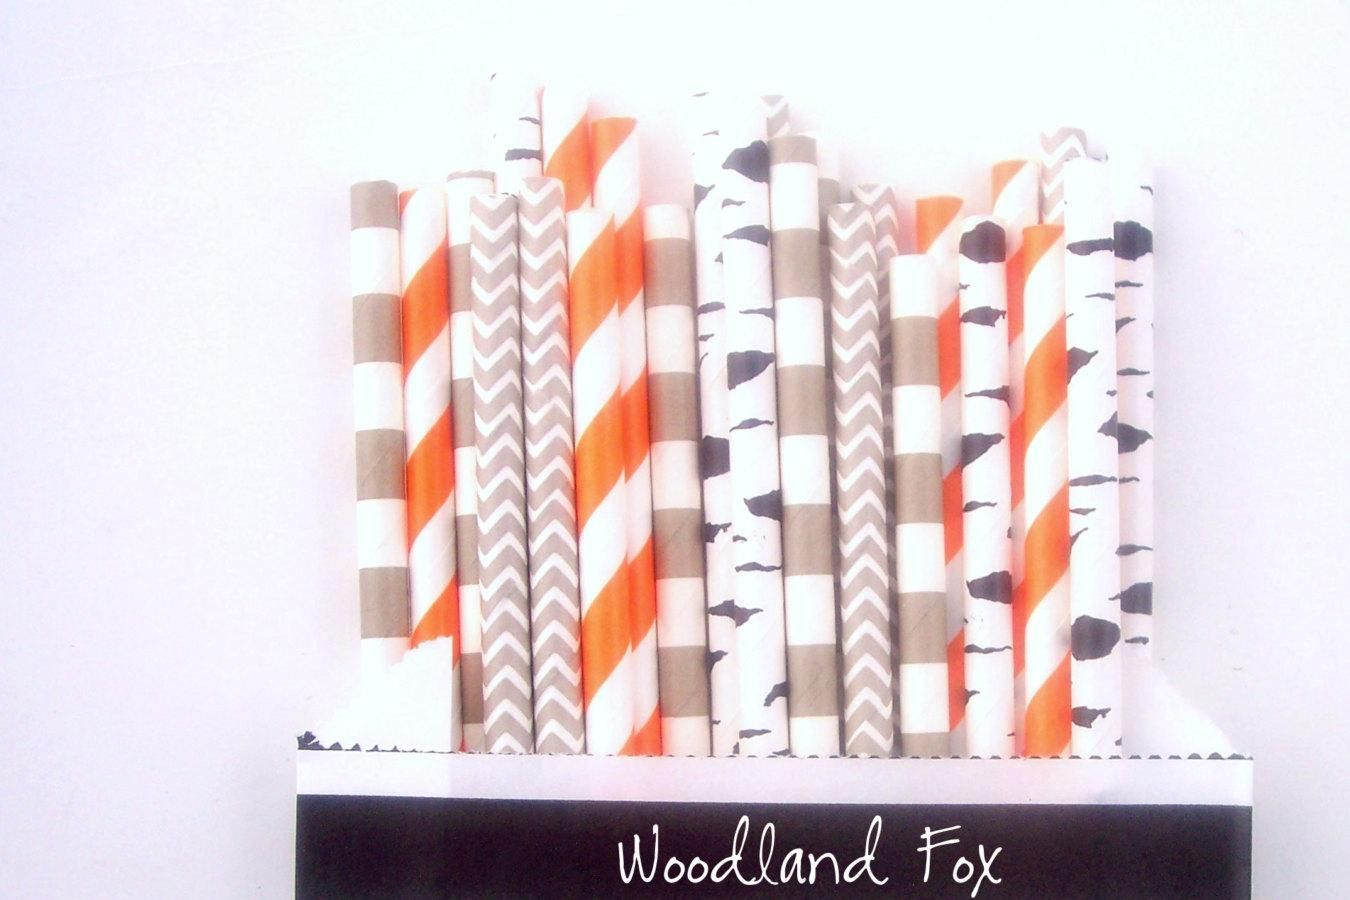 Woodland Fox Paper Party Straws -Straw Multipack (25 count) *Boy Party *Fox Party *Boy Theme Decor -Paper Straws for Birthday -Baby Shower - http://www.babyshower-decorations.com/woodland-fox-paper-party-straws-straw-multipack-25-count-boy-party-fox-party-boy-theme-decor-paper-straws-for-birthday-baby-shower.html